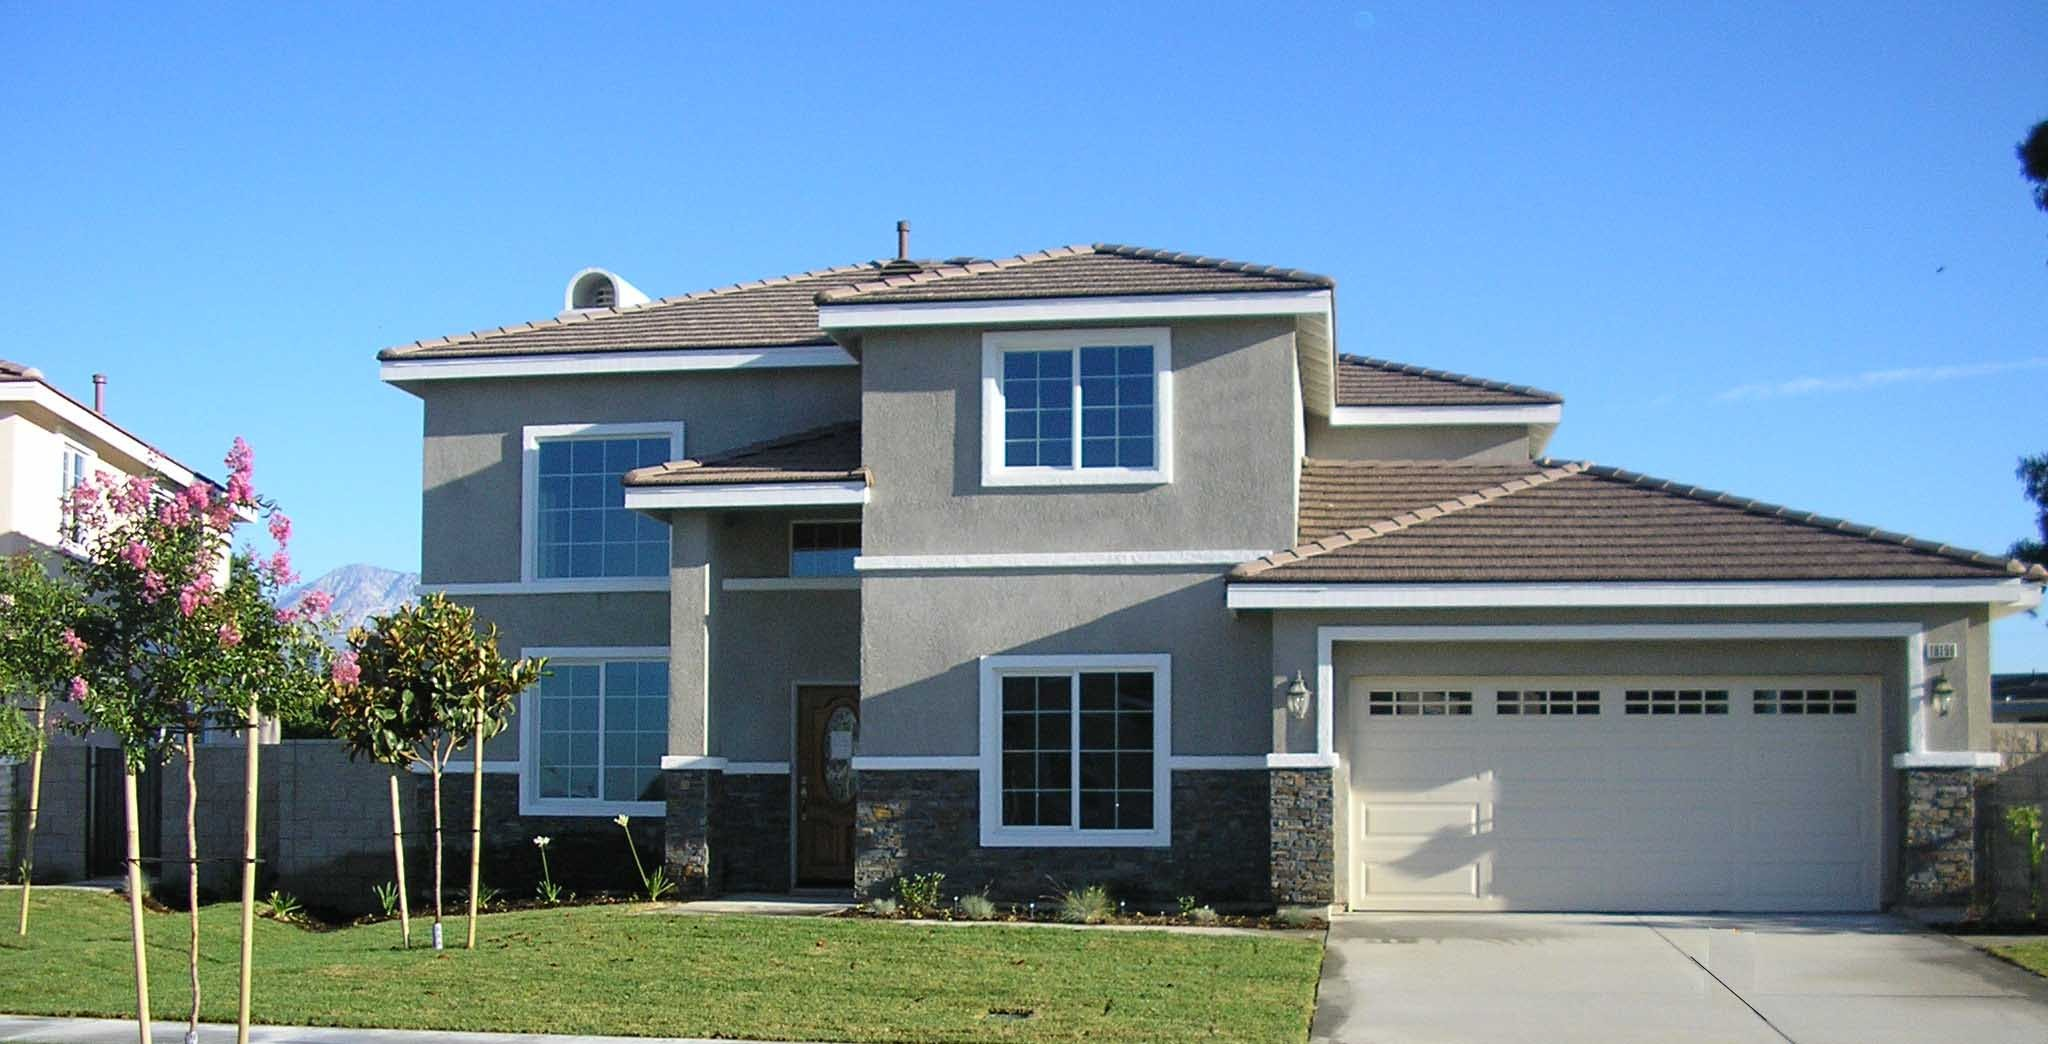 New Homes For Sale In Fontana Ca